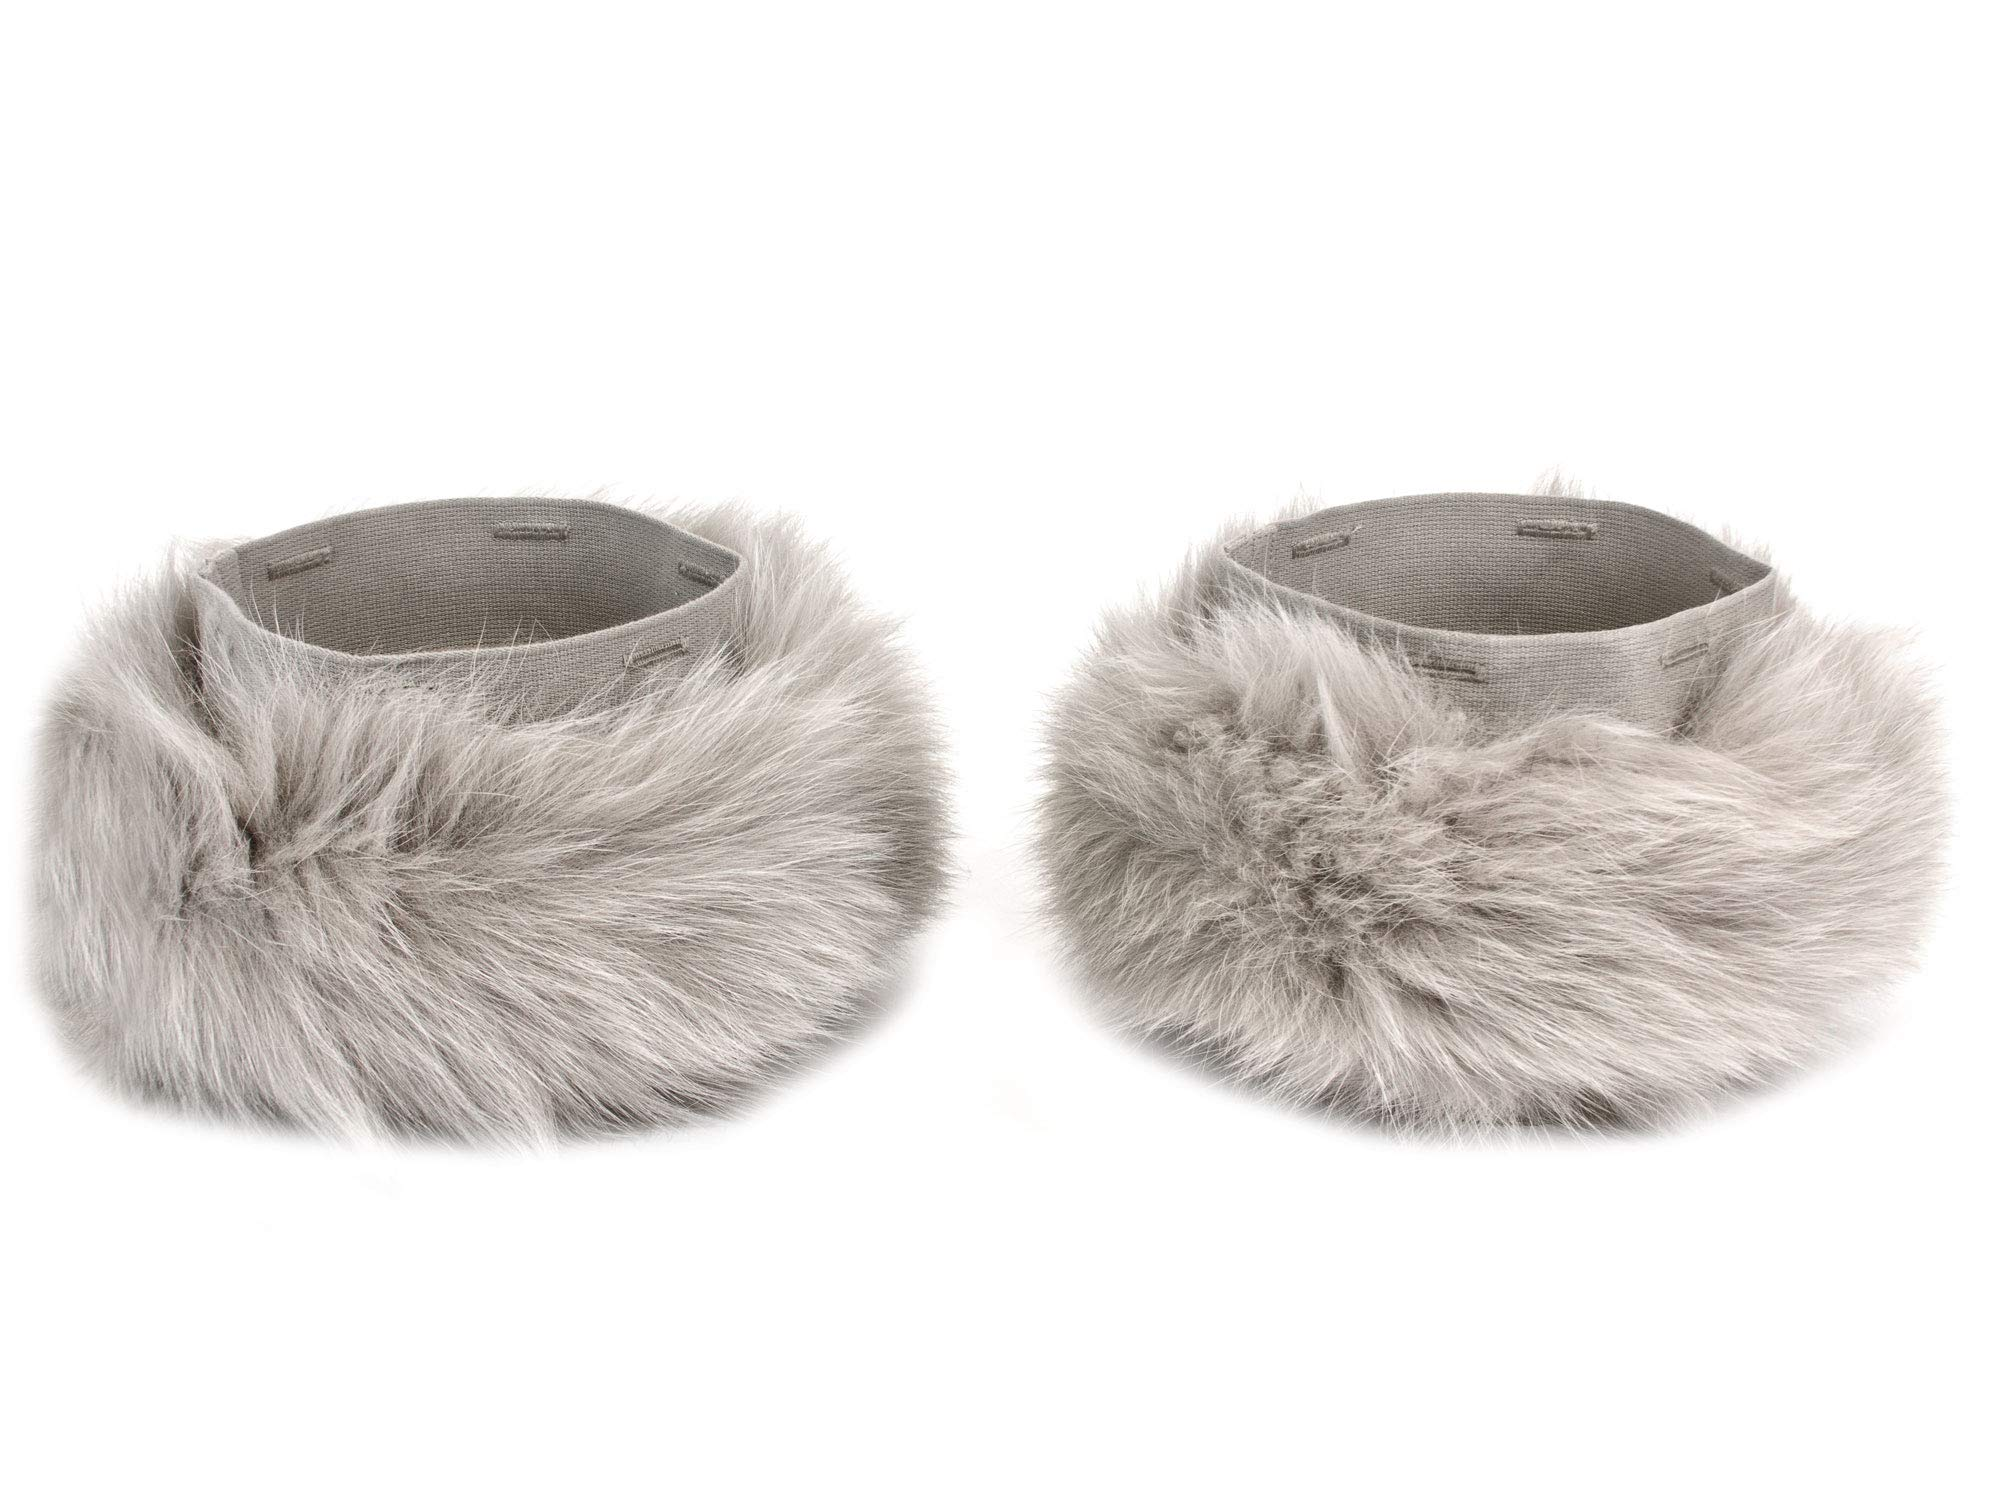 S Max Mara Women's Pechino Fox Fur Cube Collection Cuffs One Size Sand